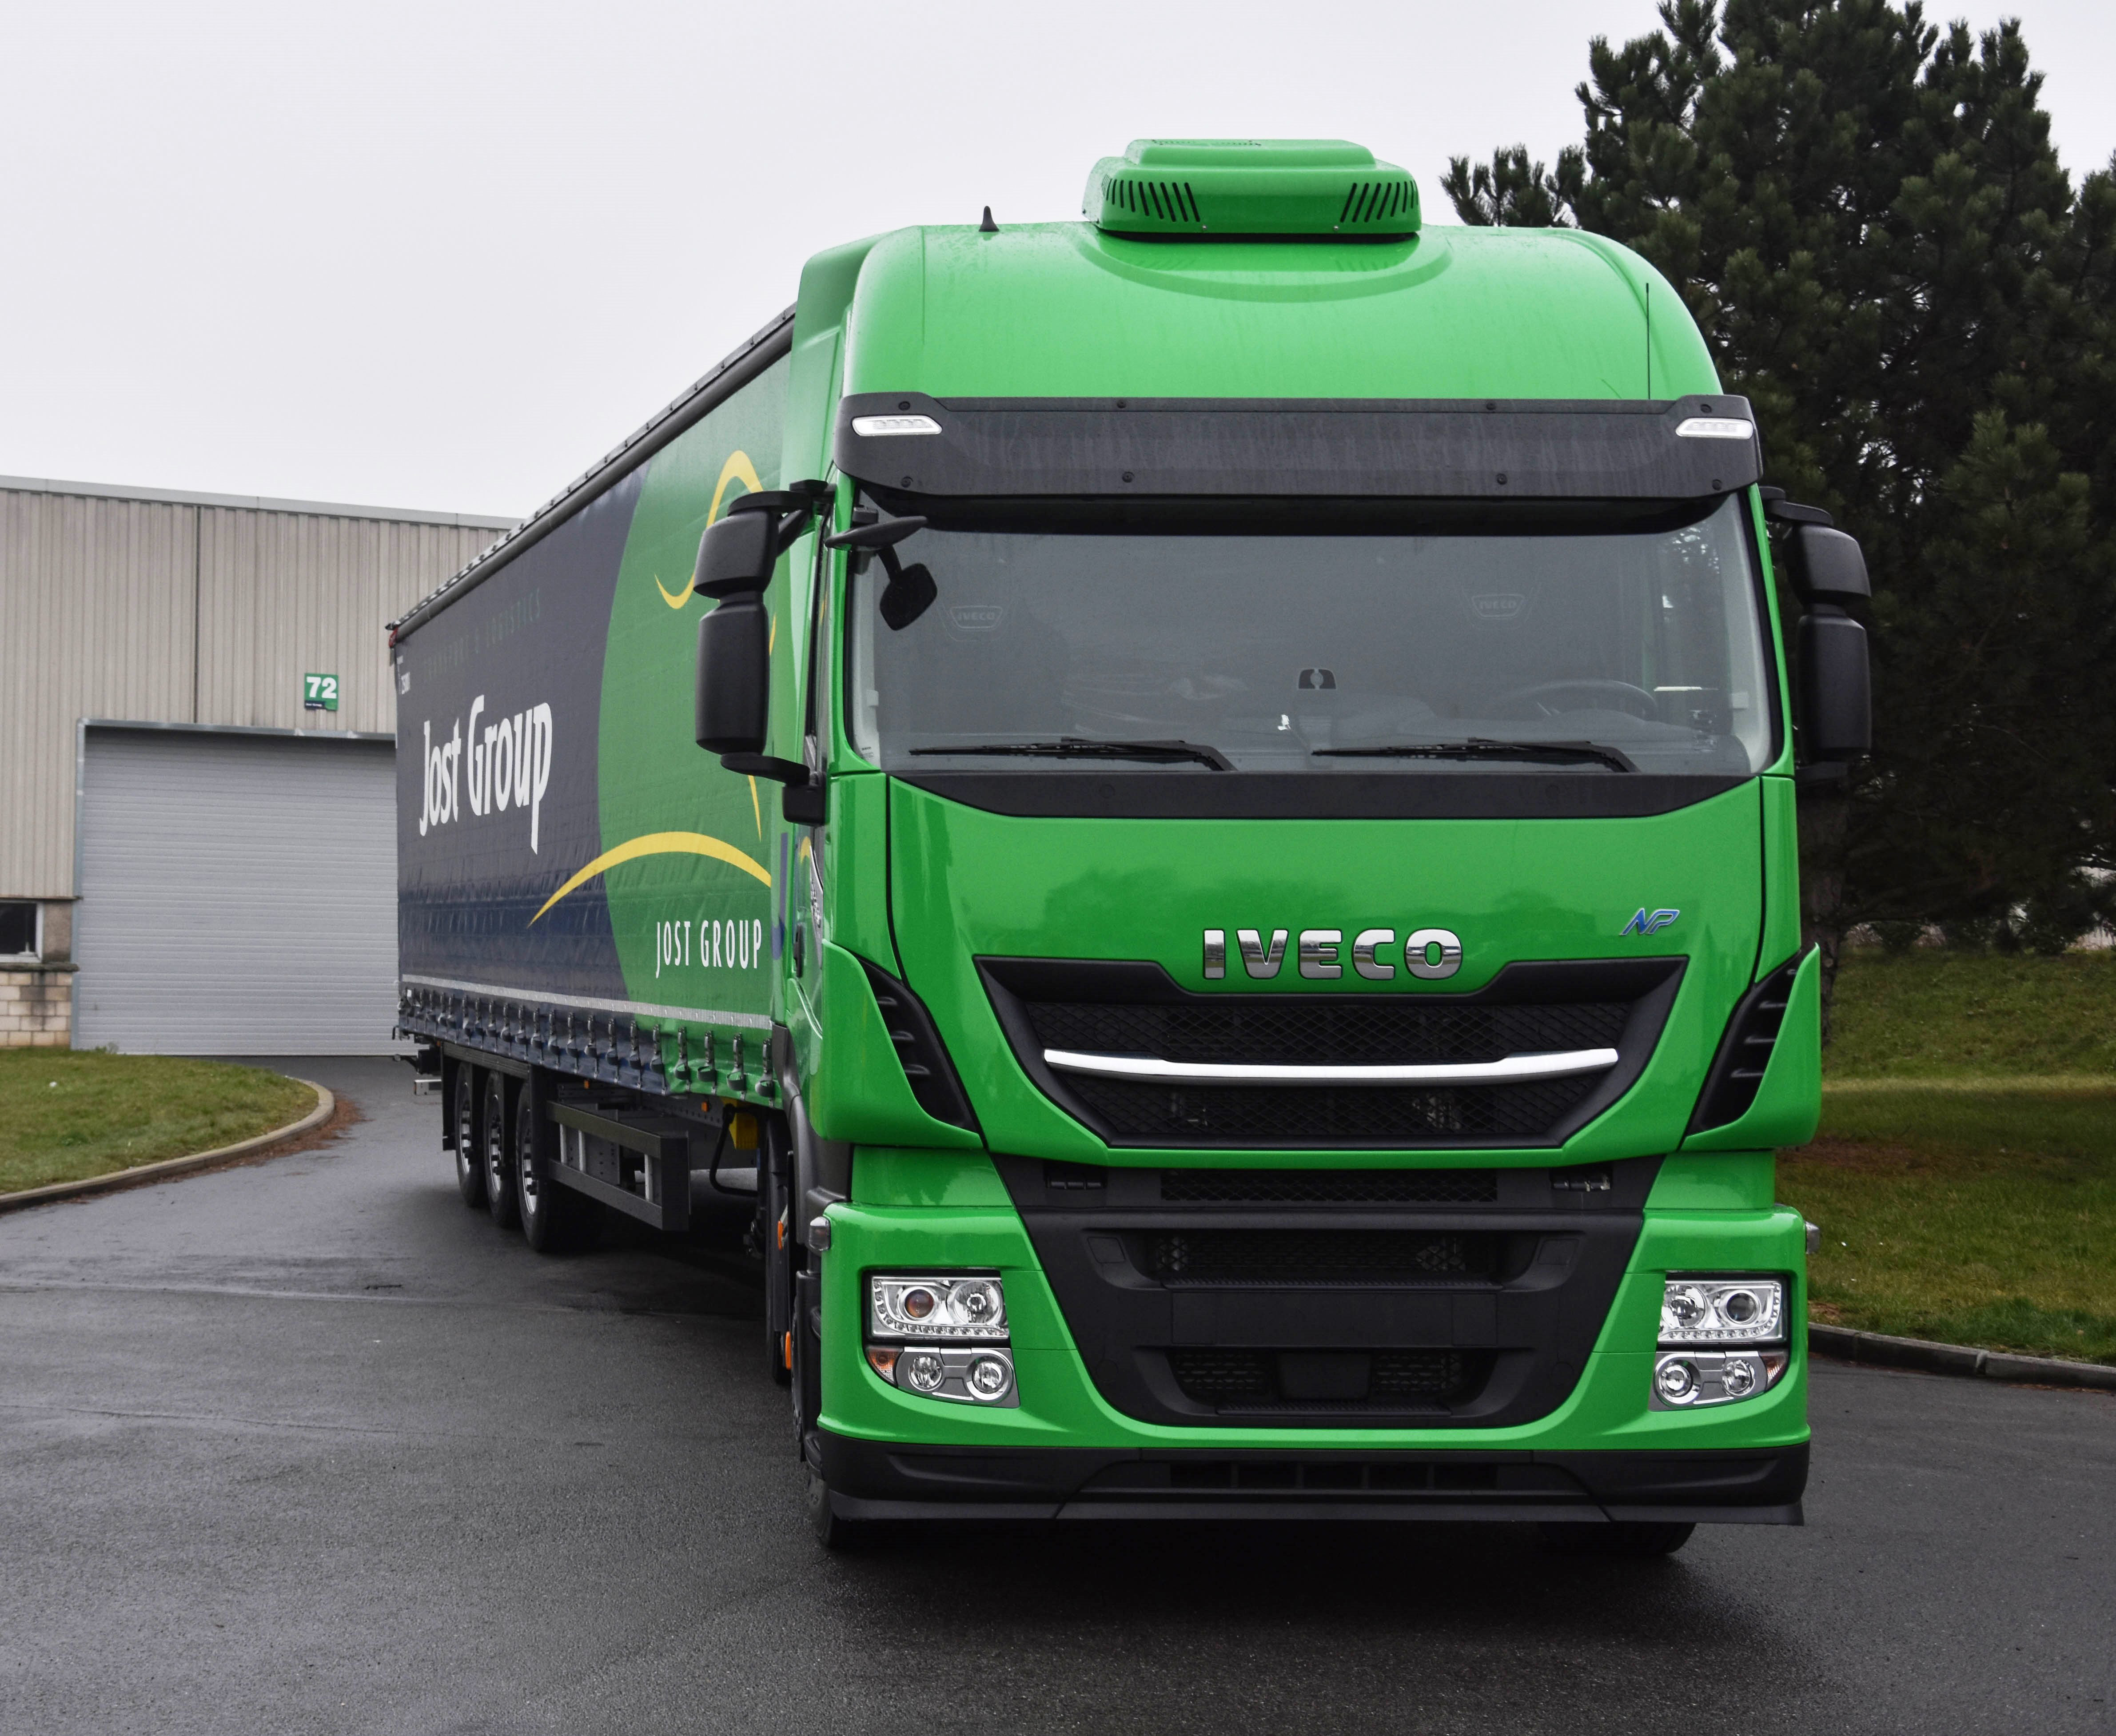 2951 Iveco Stralis Np Jost Group Iveco